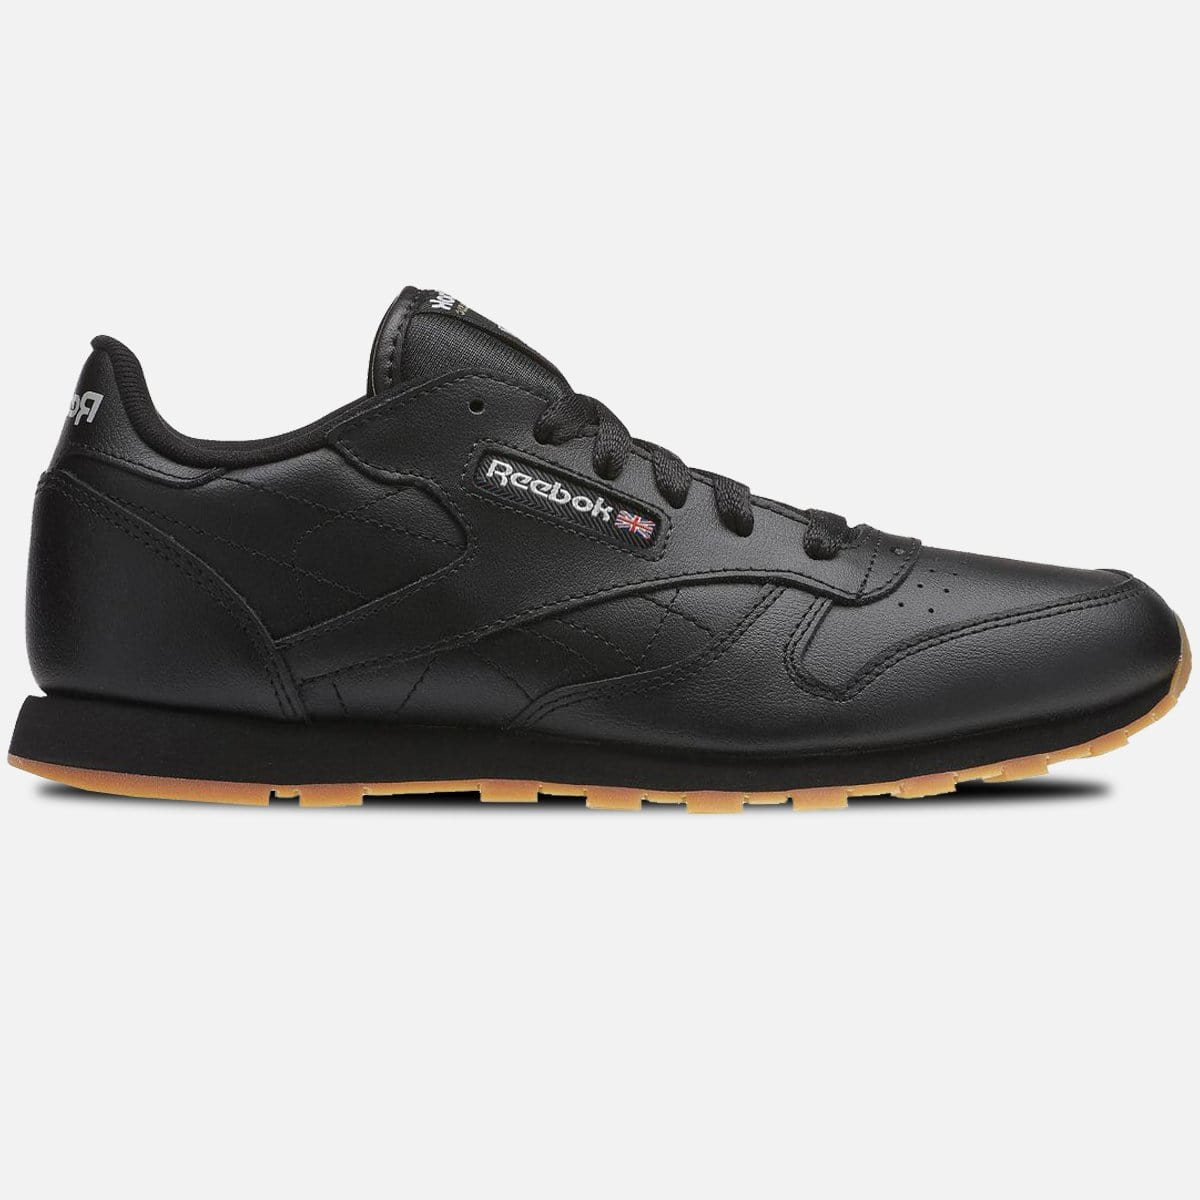 RUVilla.com is where to buy the Reebok Classic Leather (Black/Gum)!